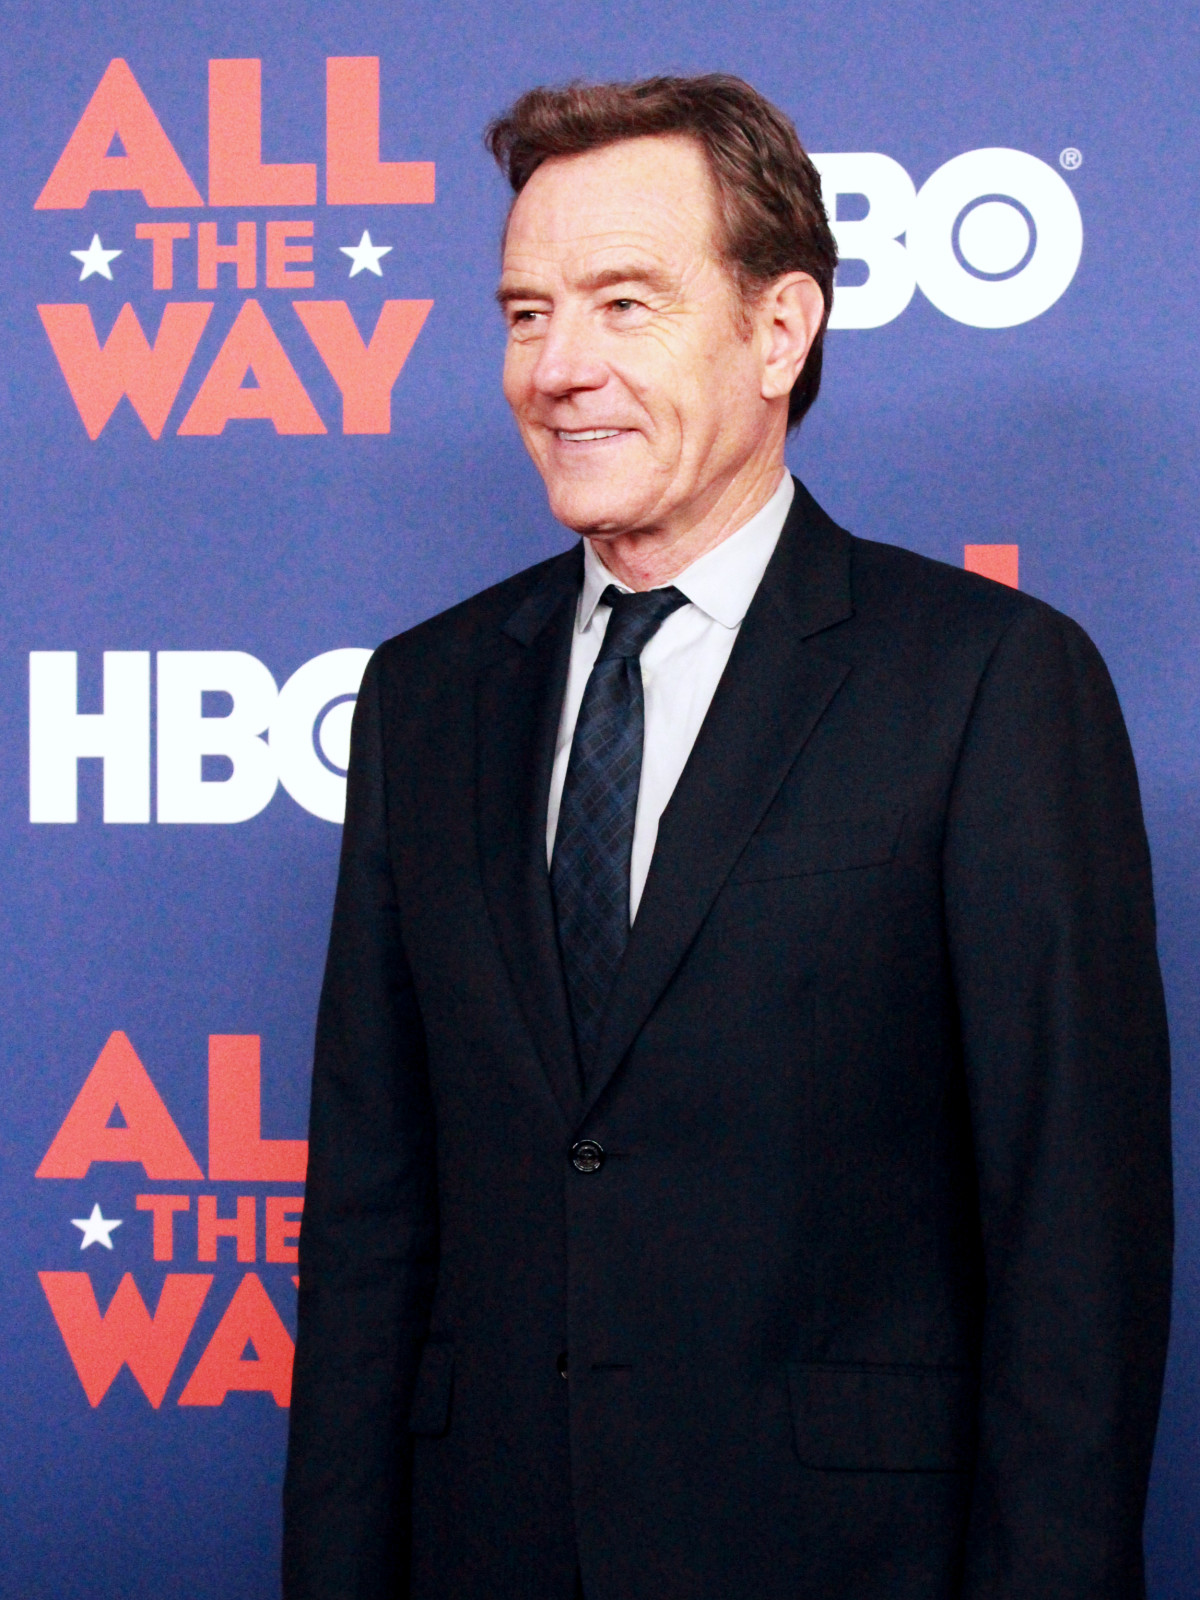 Austin premiere HBO film All the Way LBJ red carpet Bryan Cranston Lyndon B Johnson